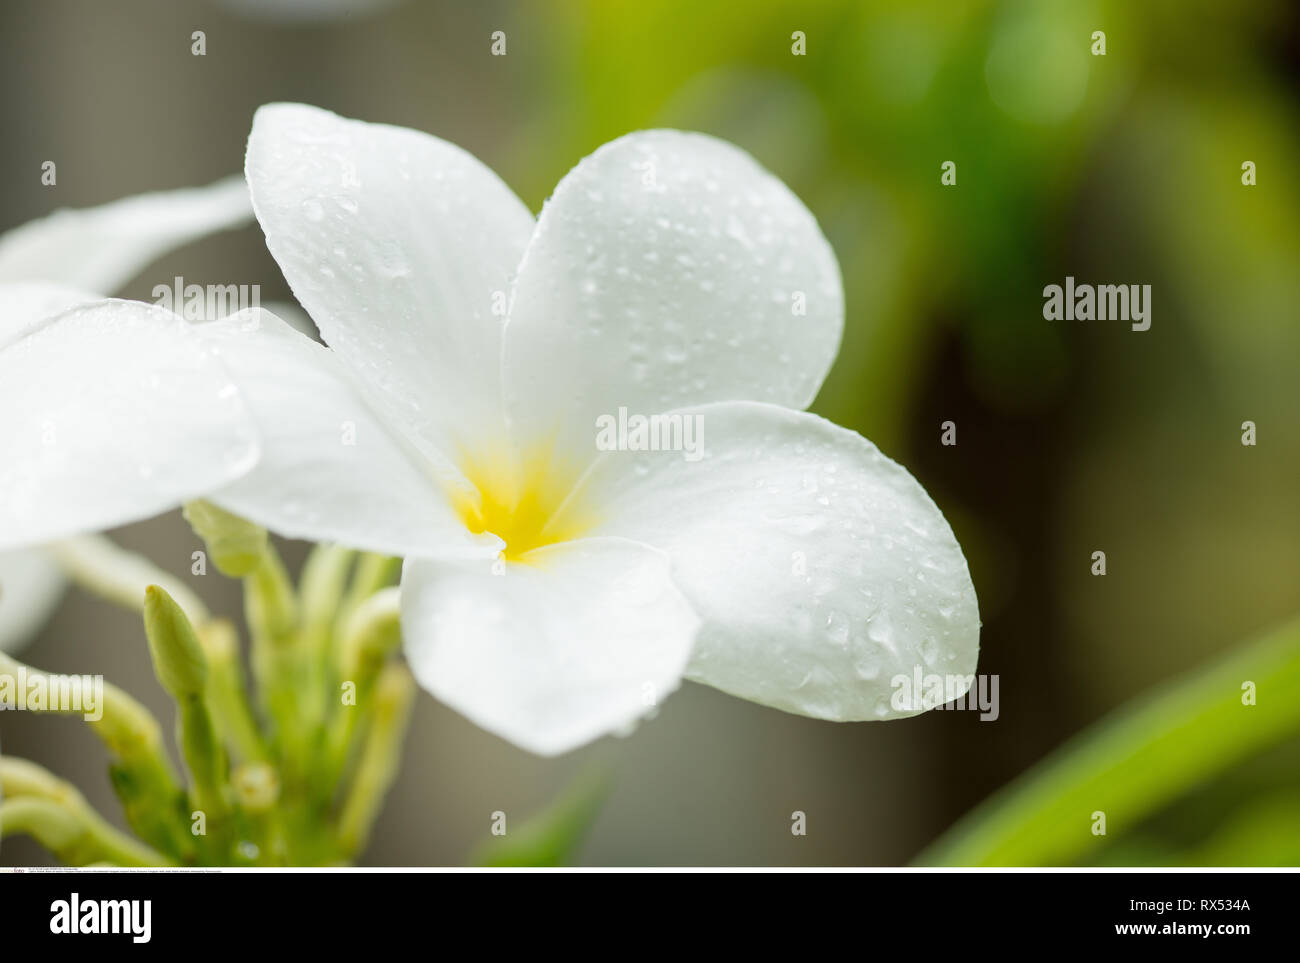 botany, blossom of the whitewash Frangipani, Caution! For Greetingcard-Use / Postcard-Use In German Speaking Countries Certain Restrictions May Apply - Stock Image